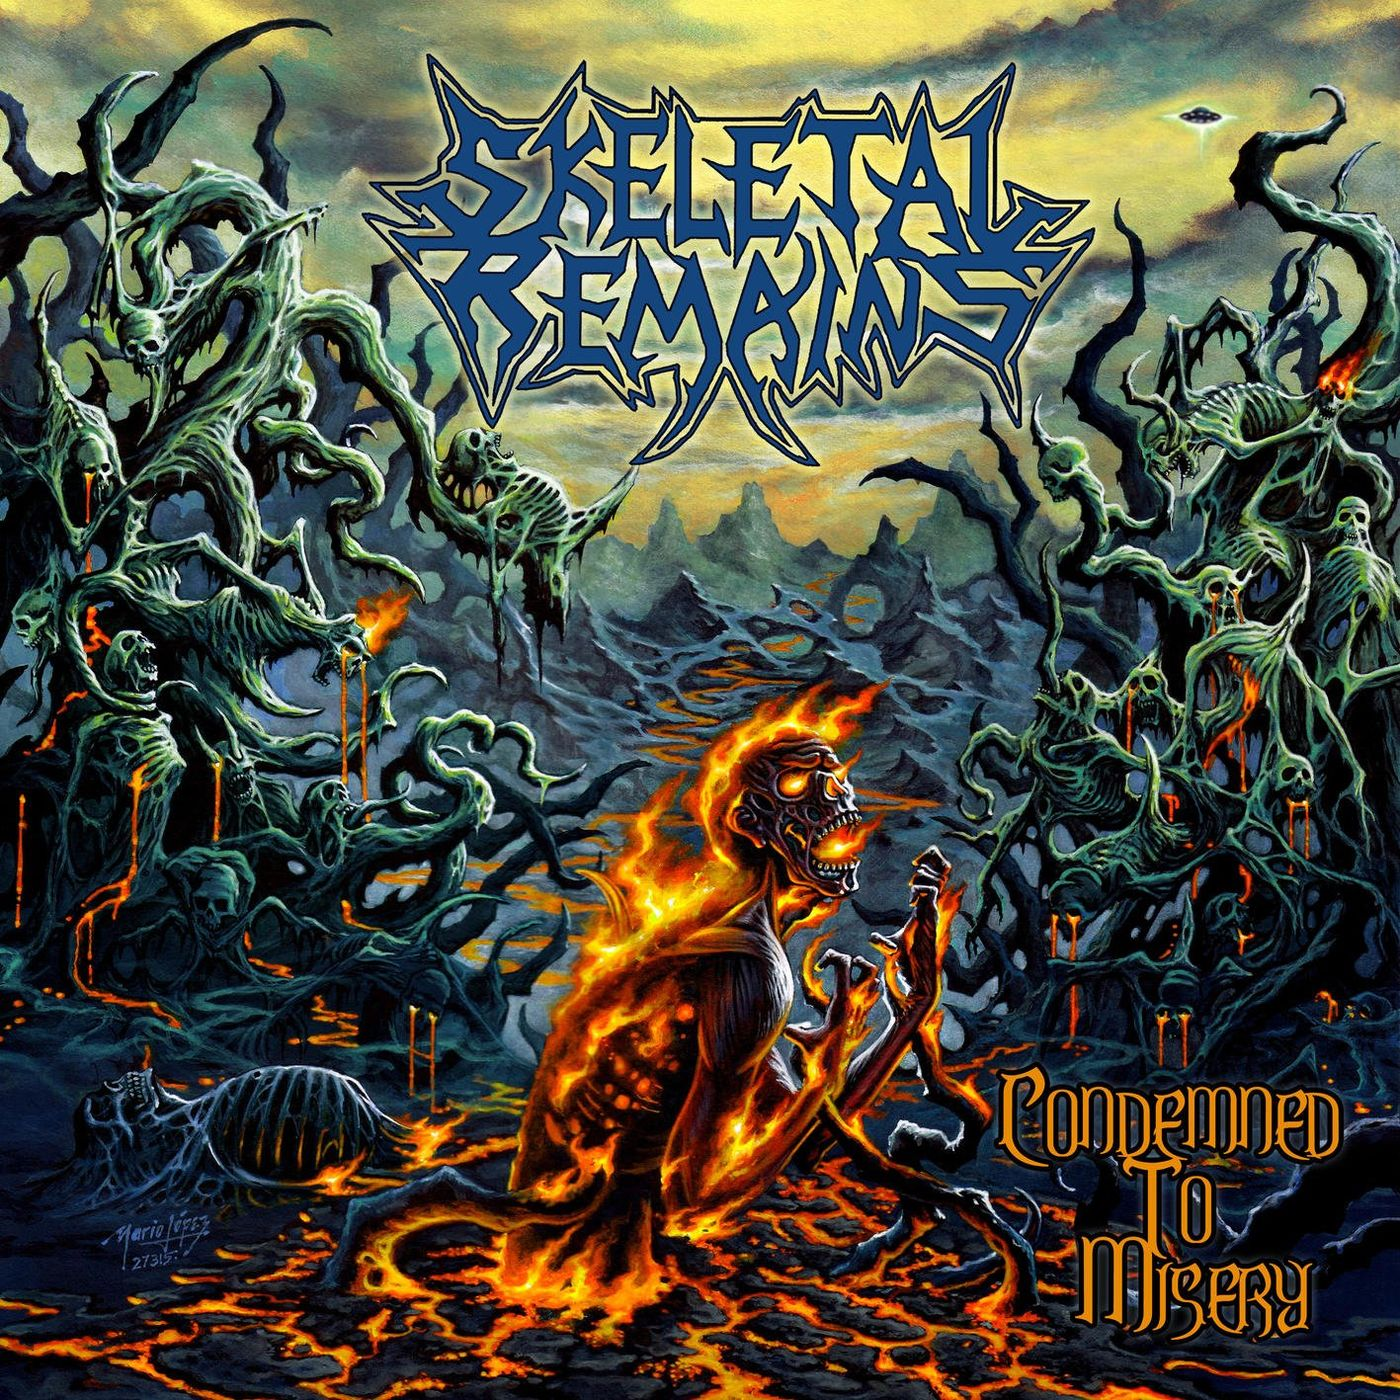 Skeletal Remains - Condemned To Misery [Remastered] (2020)